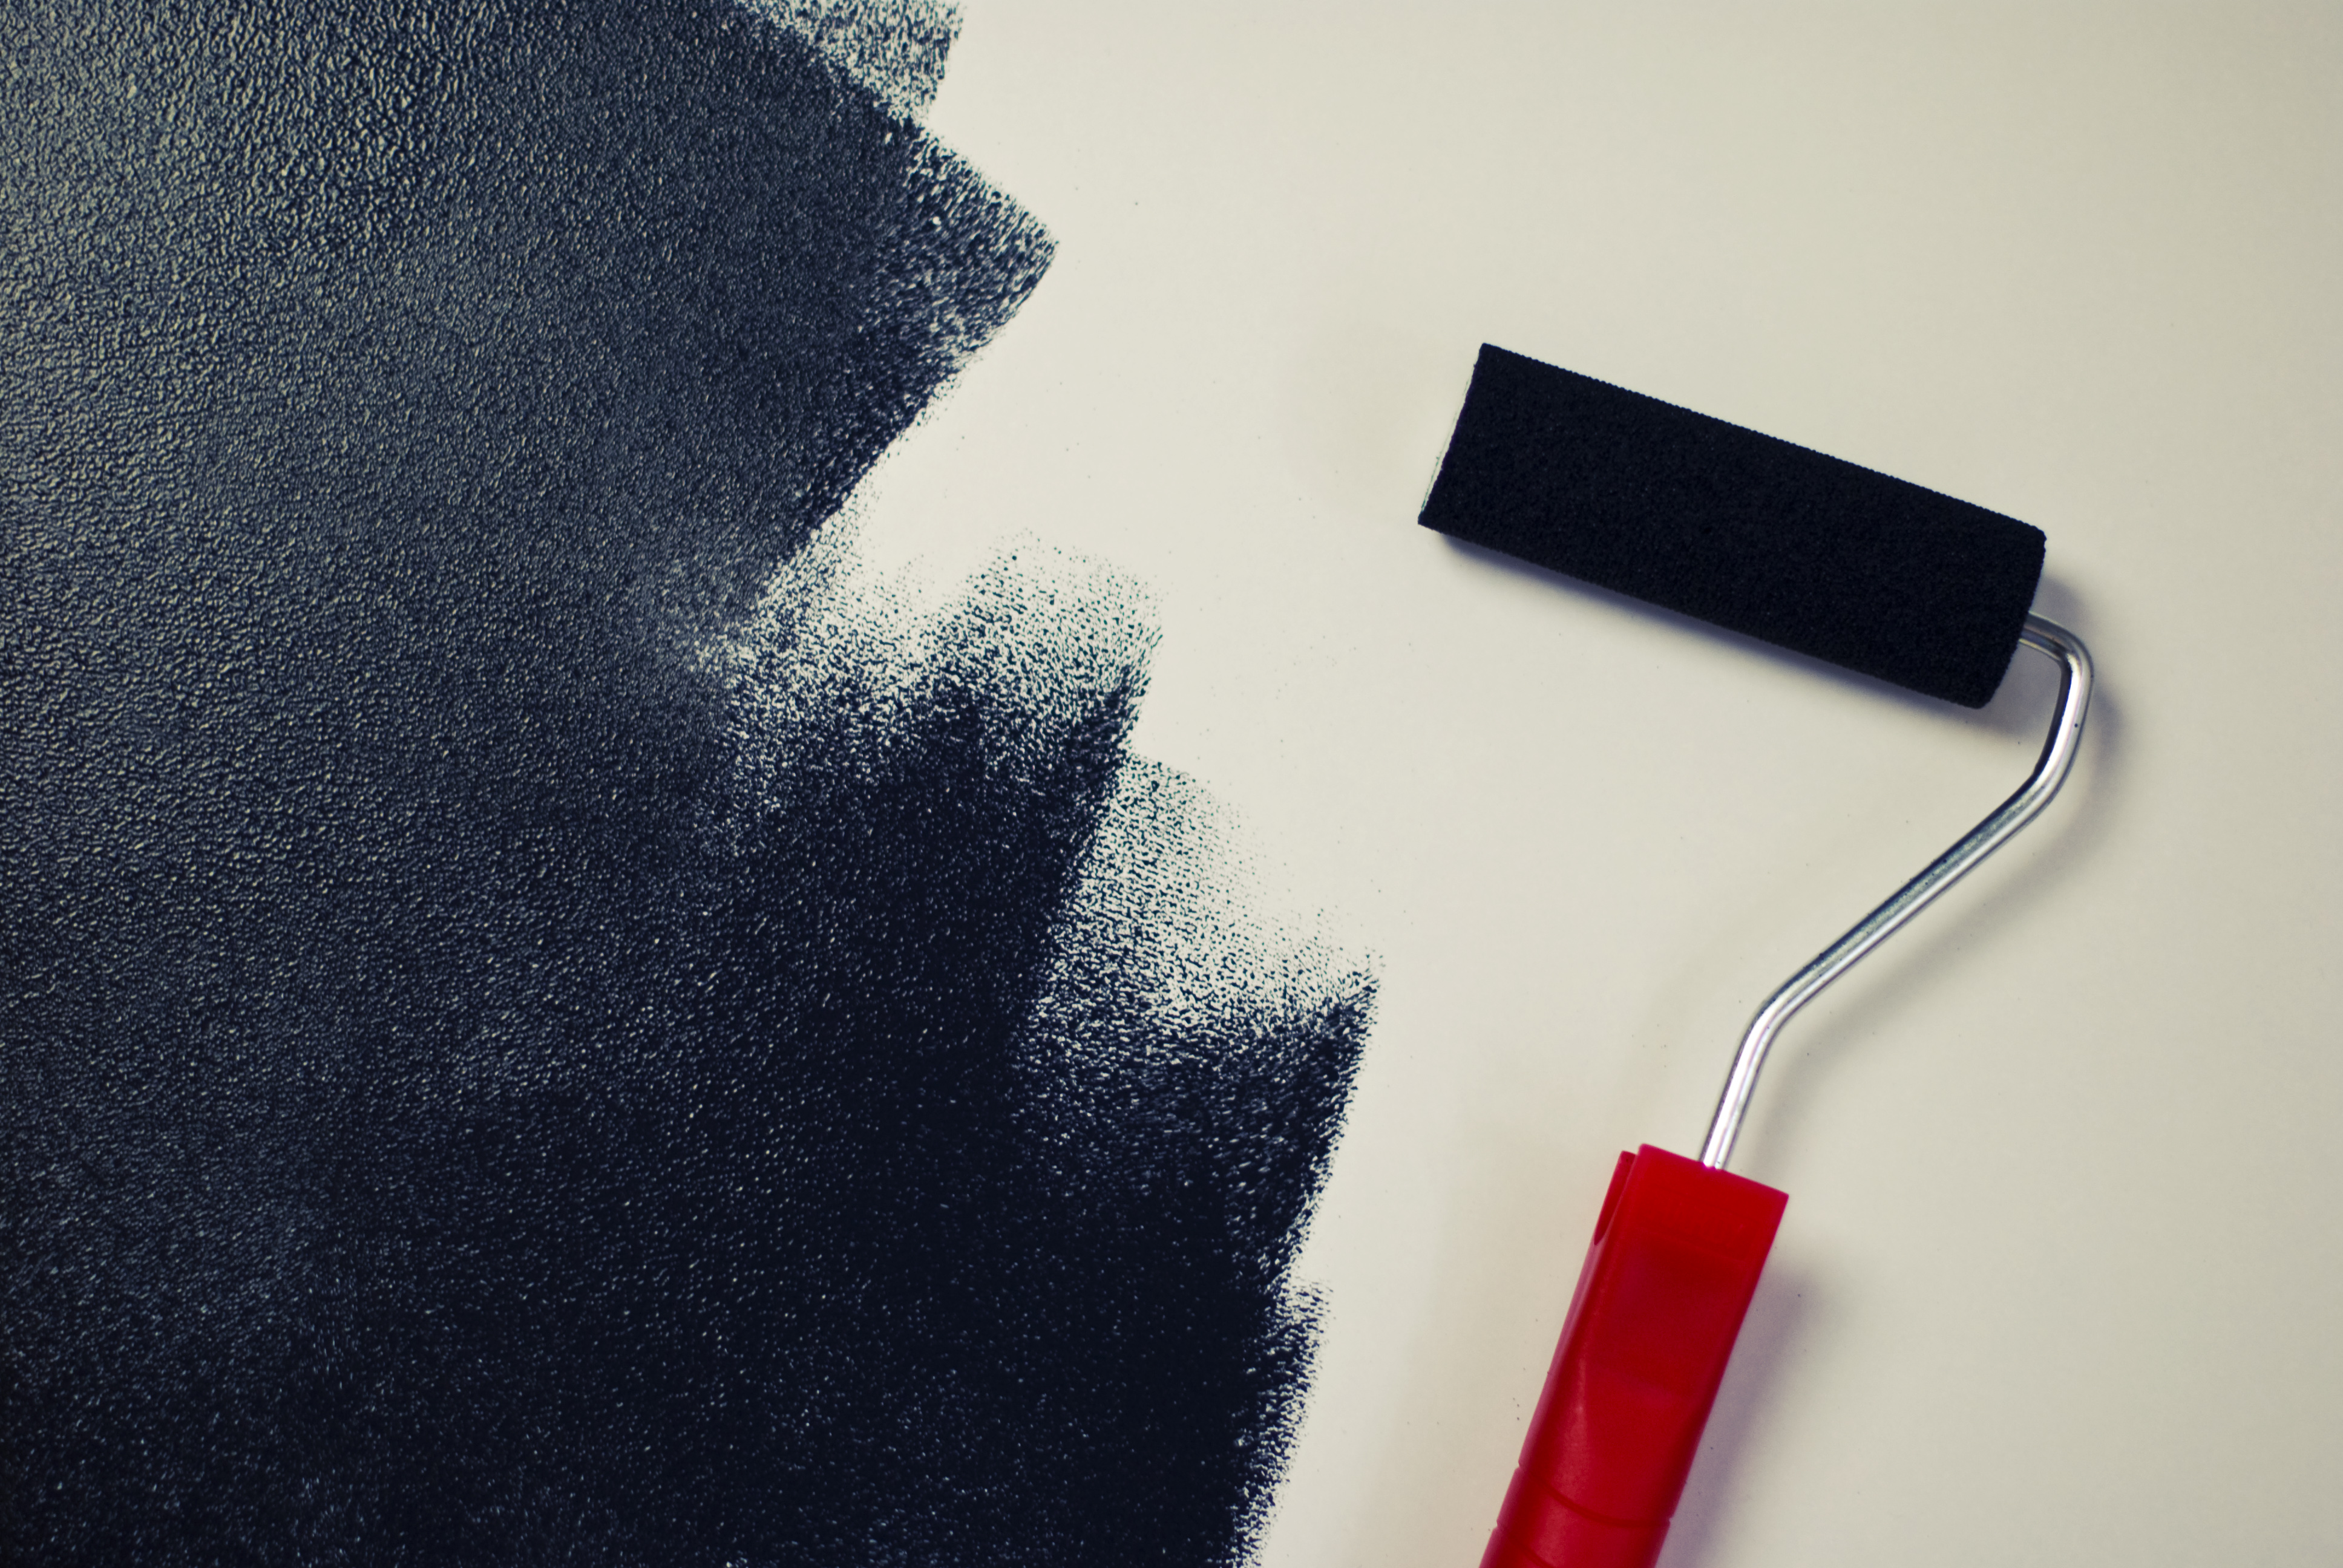 House Painting Tips for Beginners NewlyWoodwards